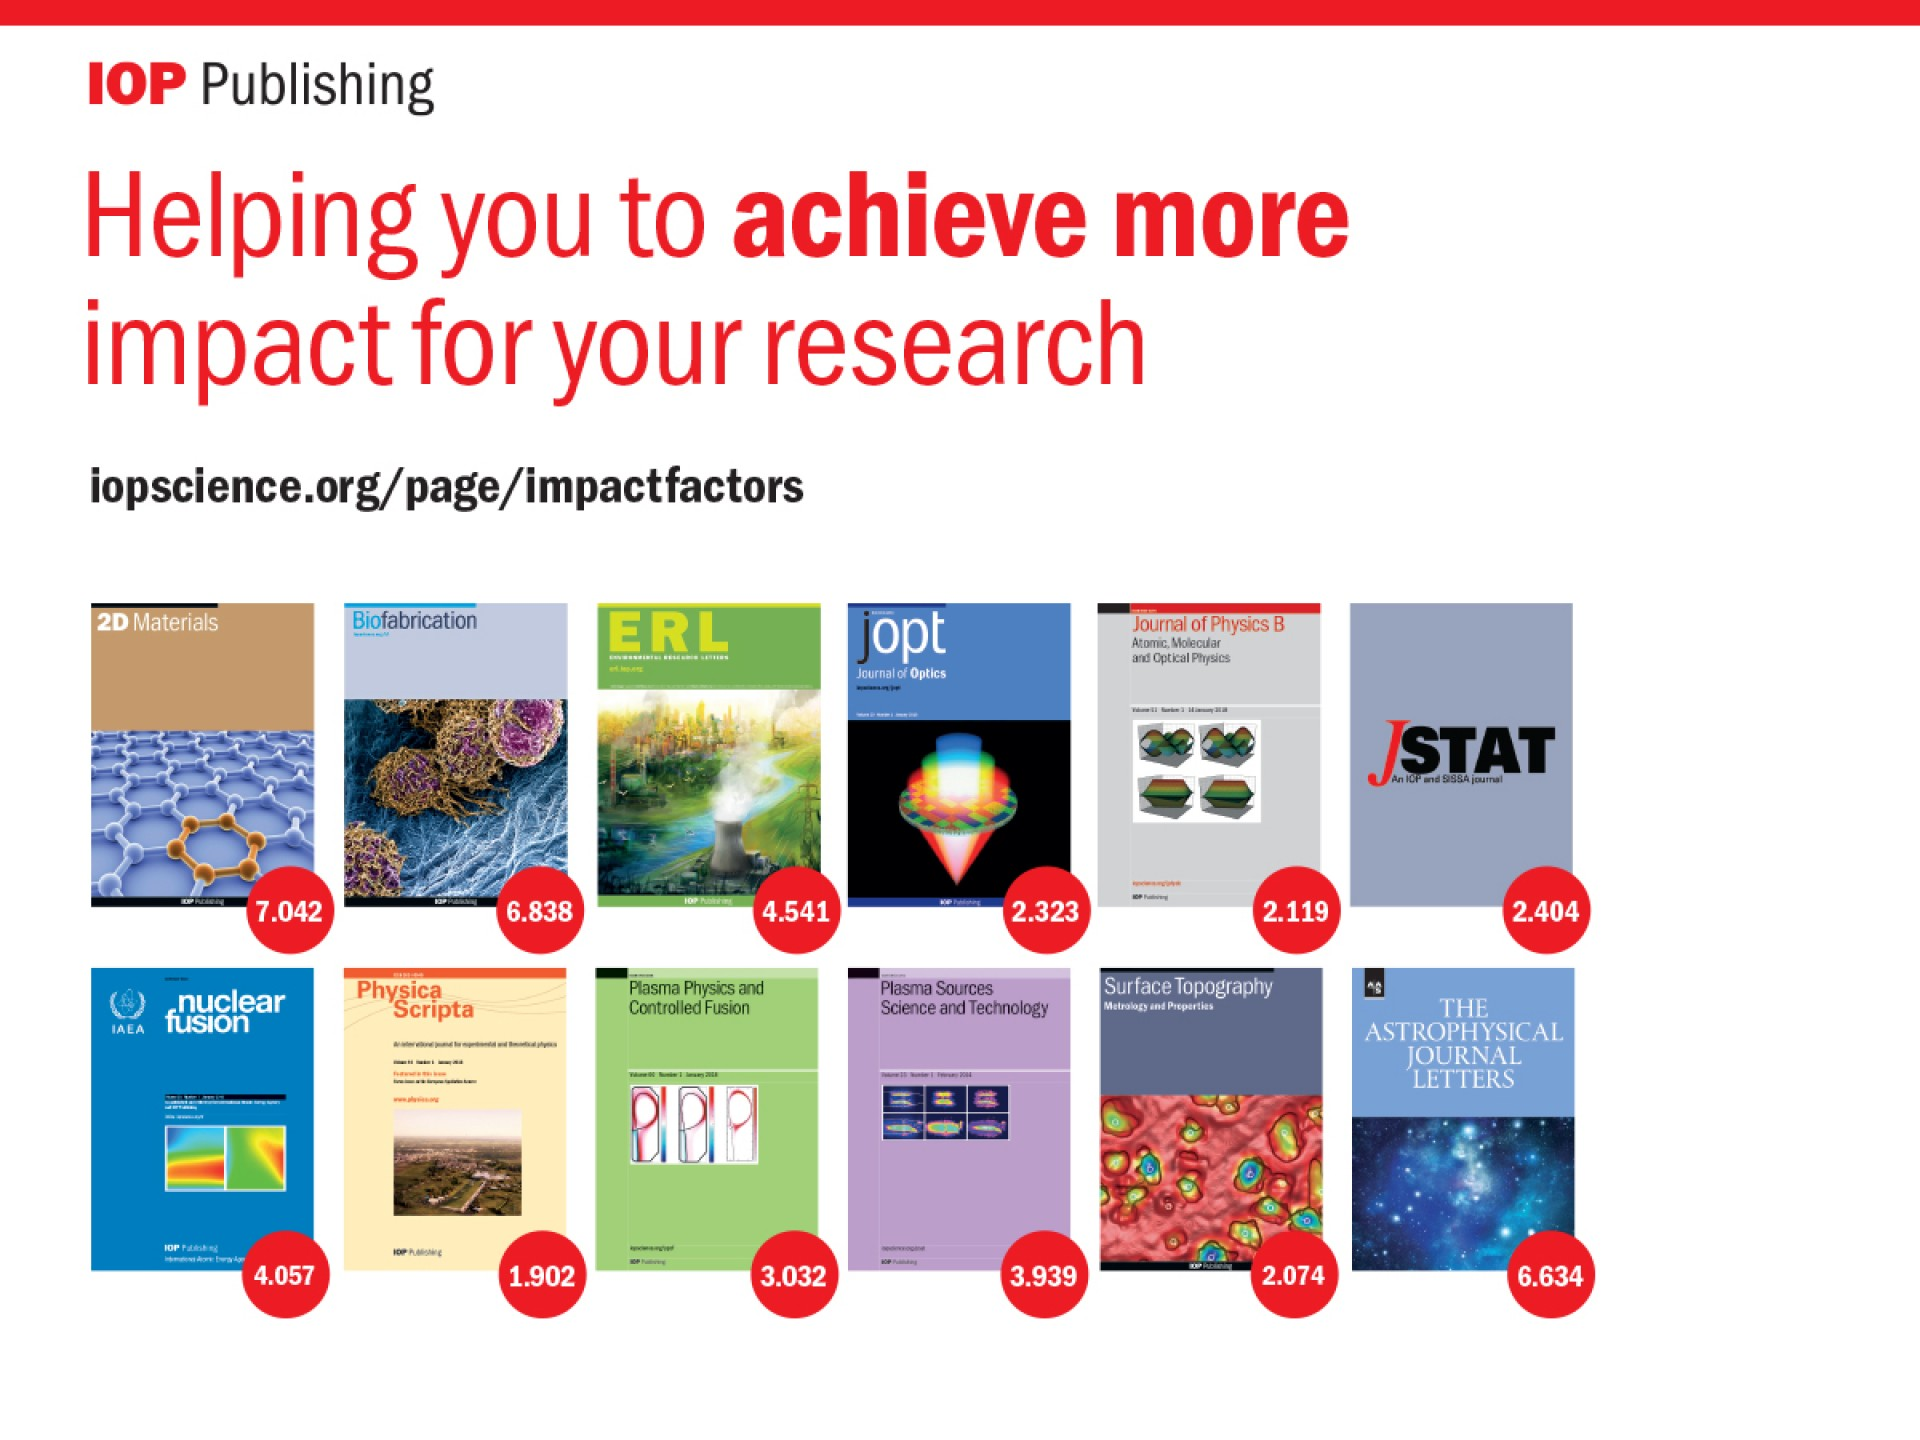 015 Best Journals To Publish Researchs Impact Factors Iop Publishing 1200x900guesttrue Stunning Research Papers In Computer Science List Of 1920